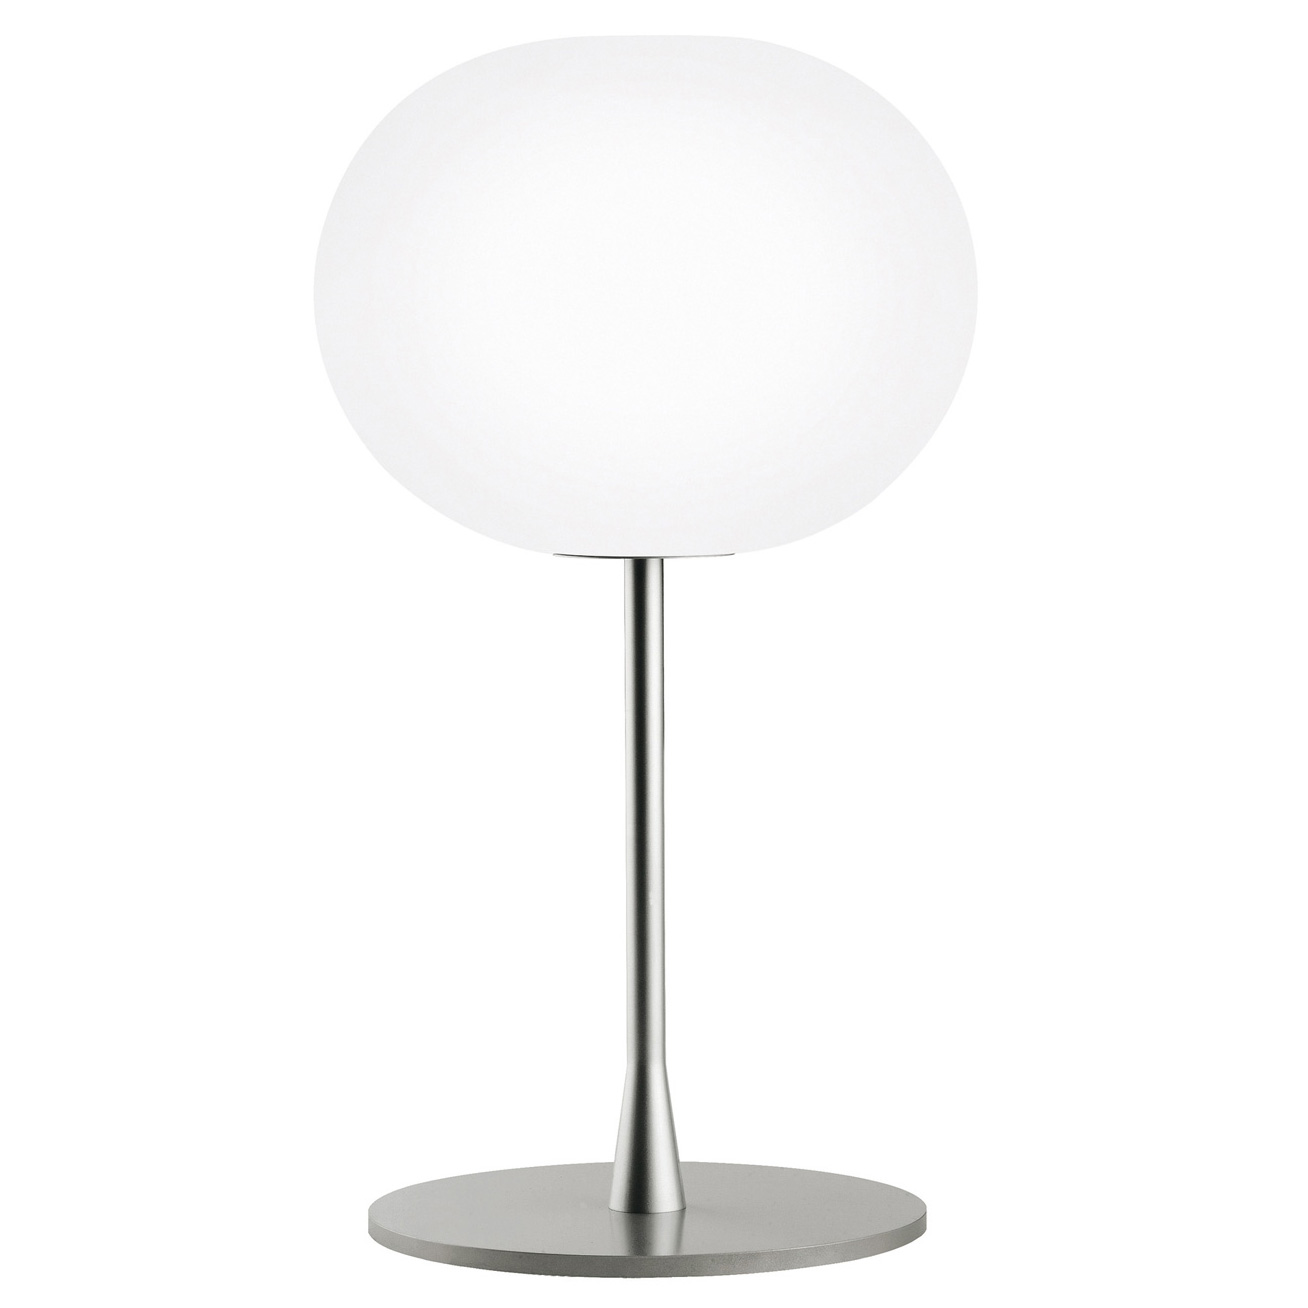 Glo Ball T1 Table Lamp By Flos Lighting Fu302000